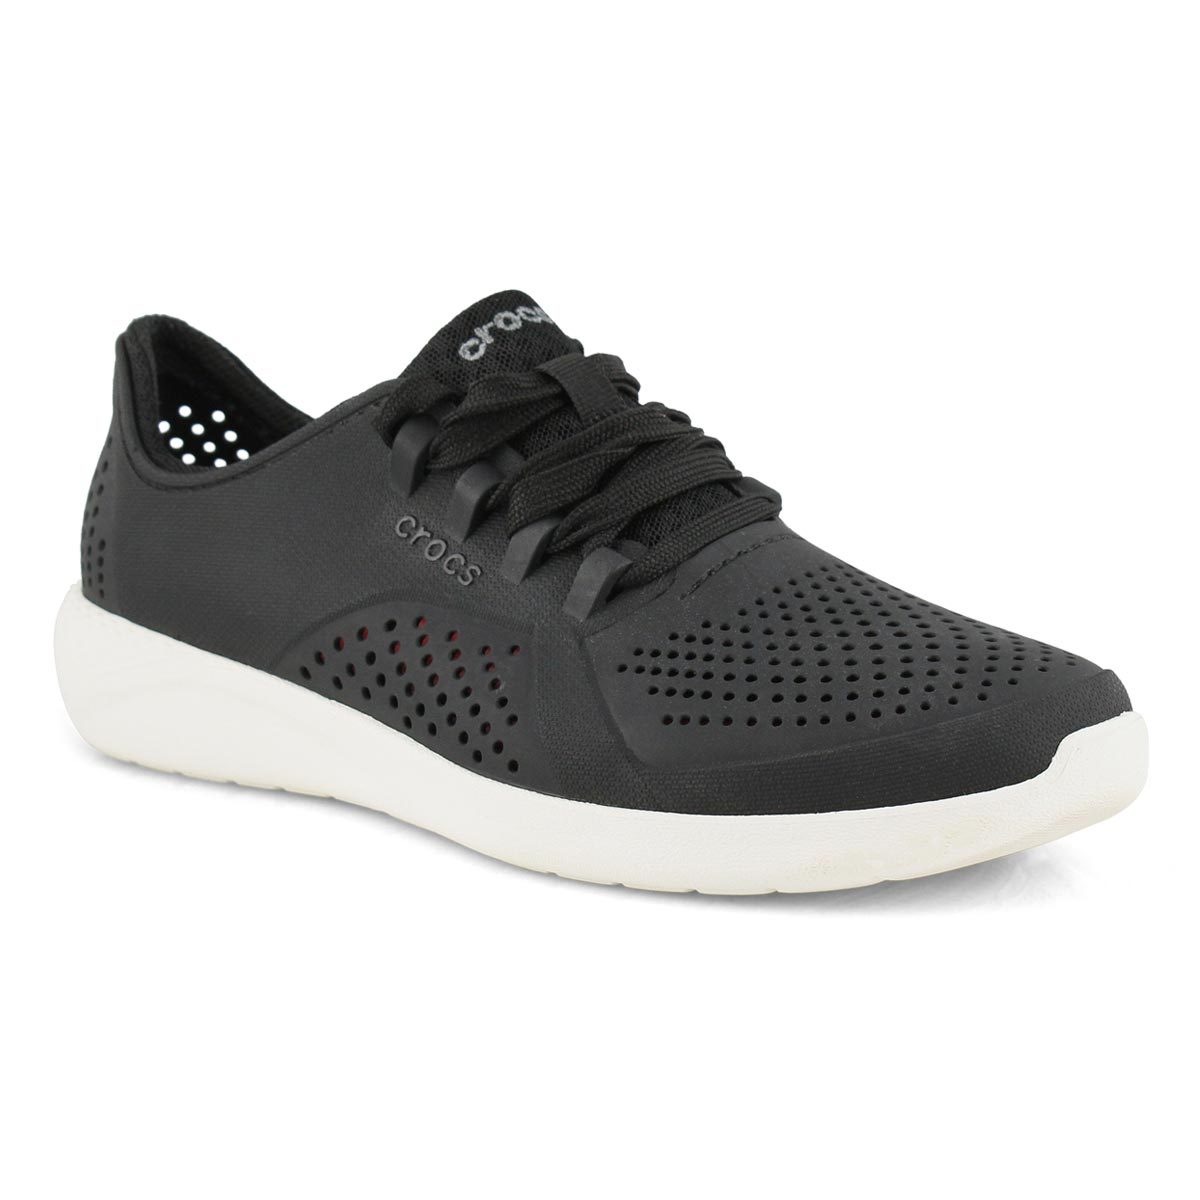 Lds LiteRide Pacer black lace up sneaker